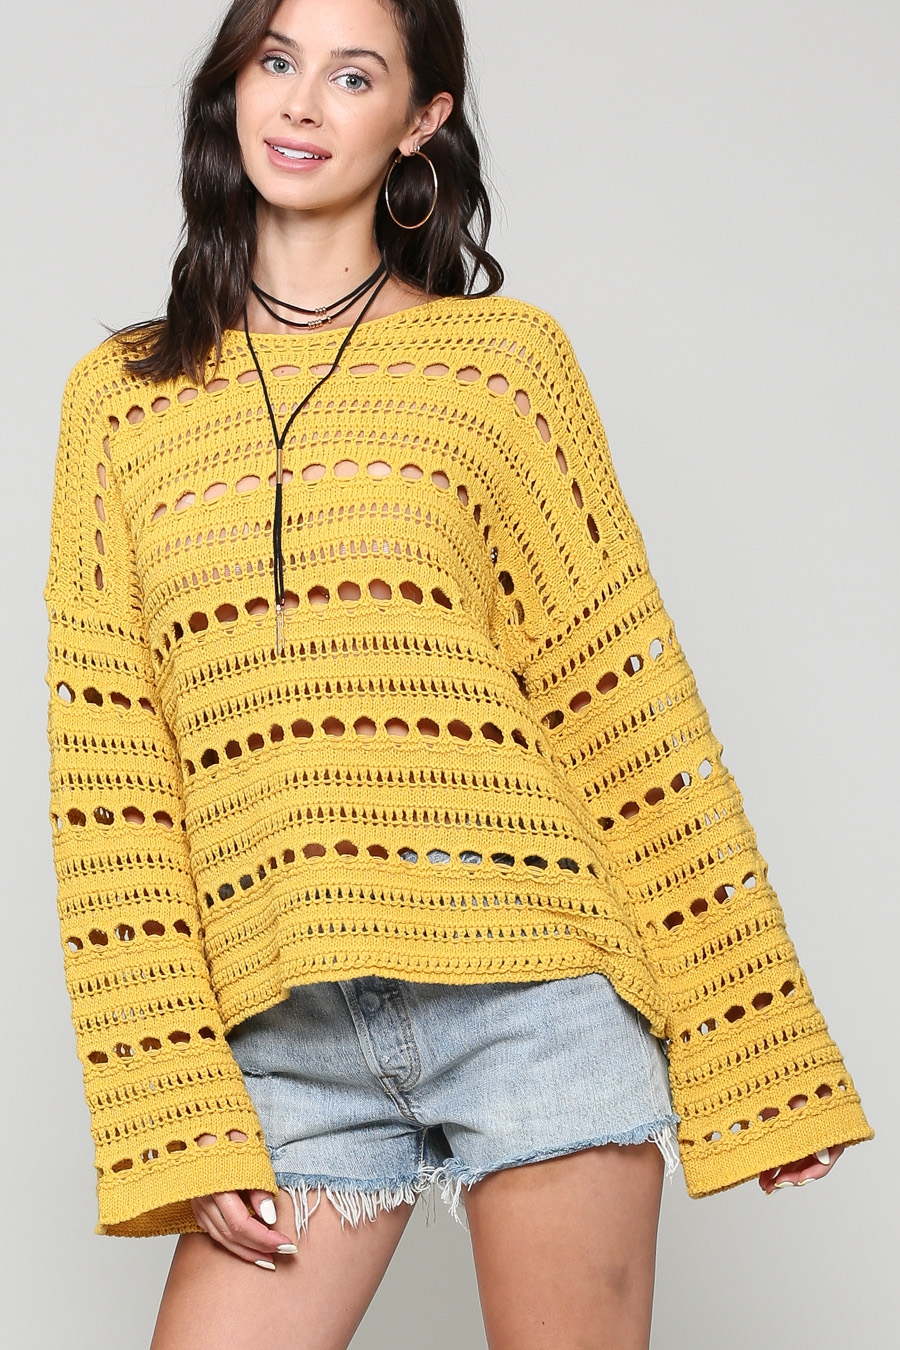 LOOSE CROCHET PULLOVER WITH BELL SLE - orangeshine.com